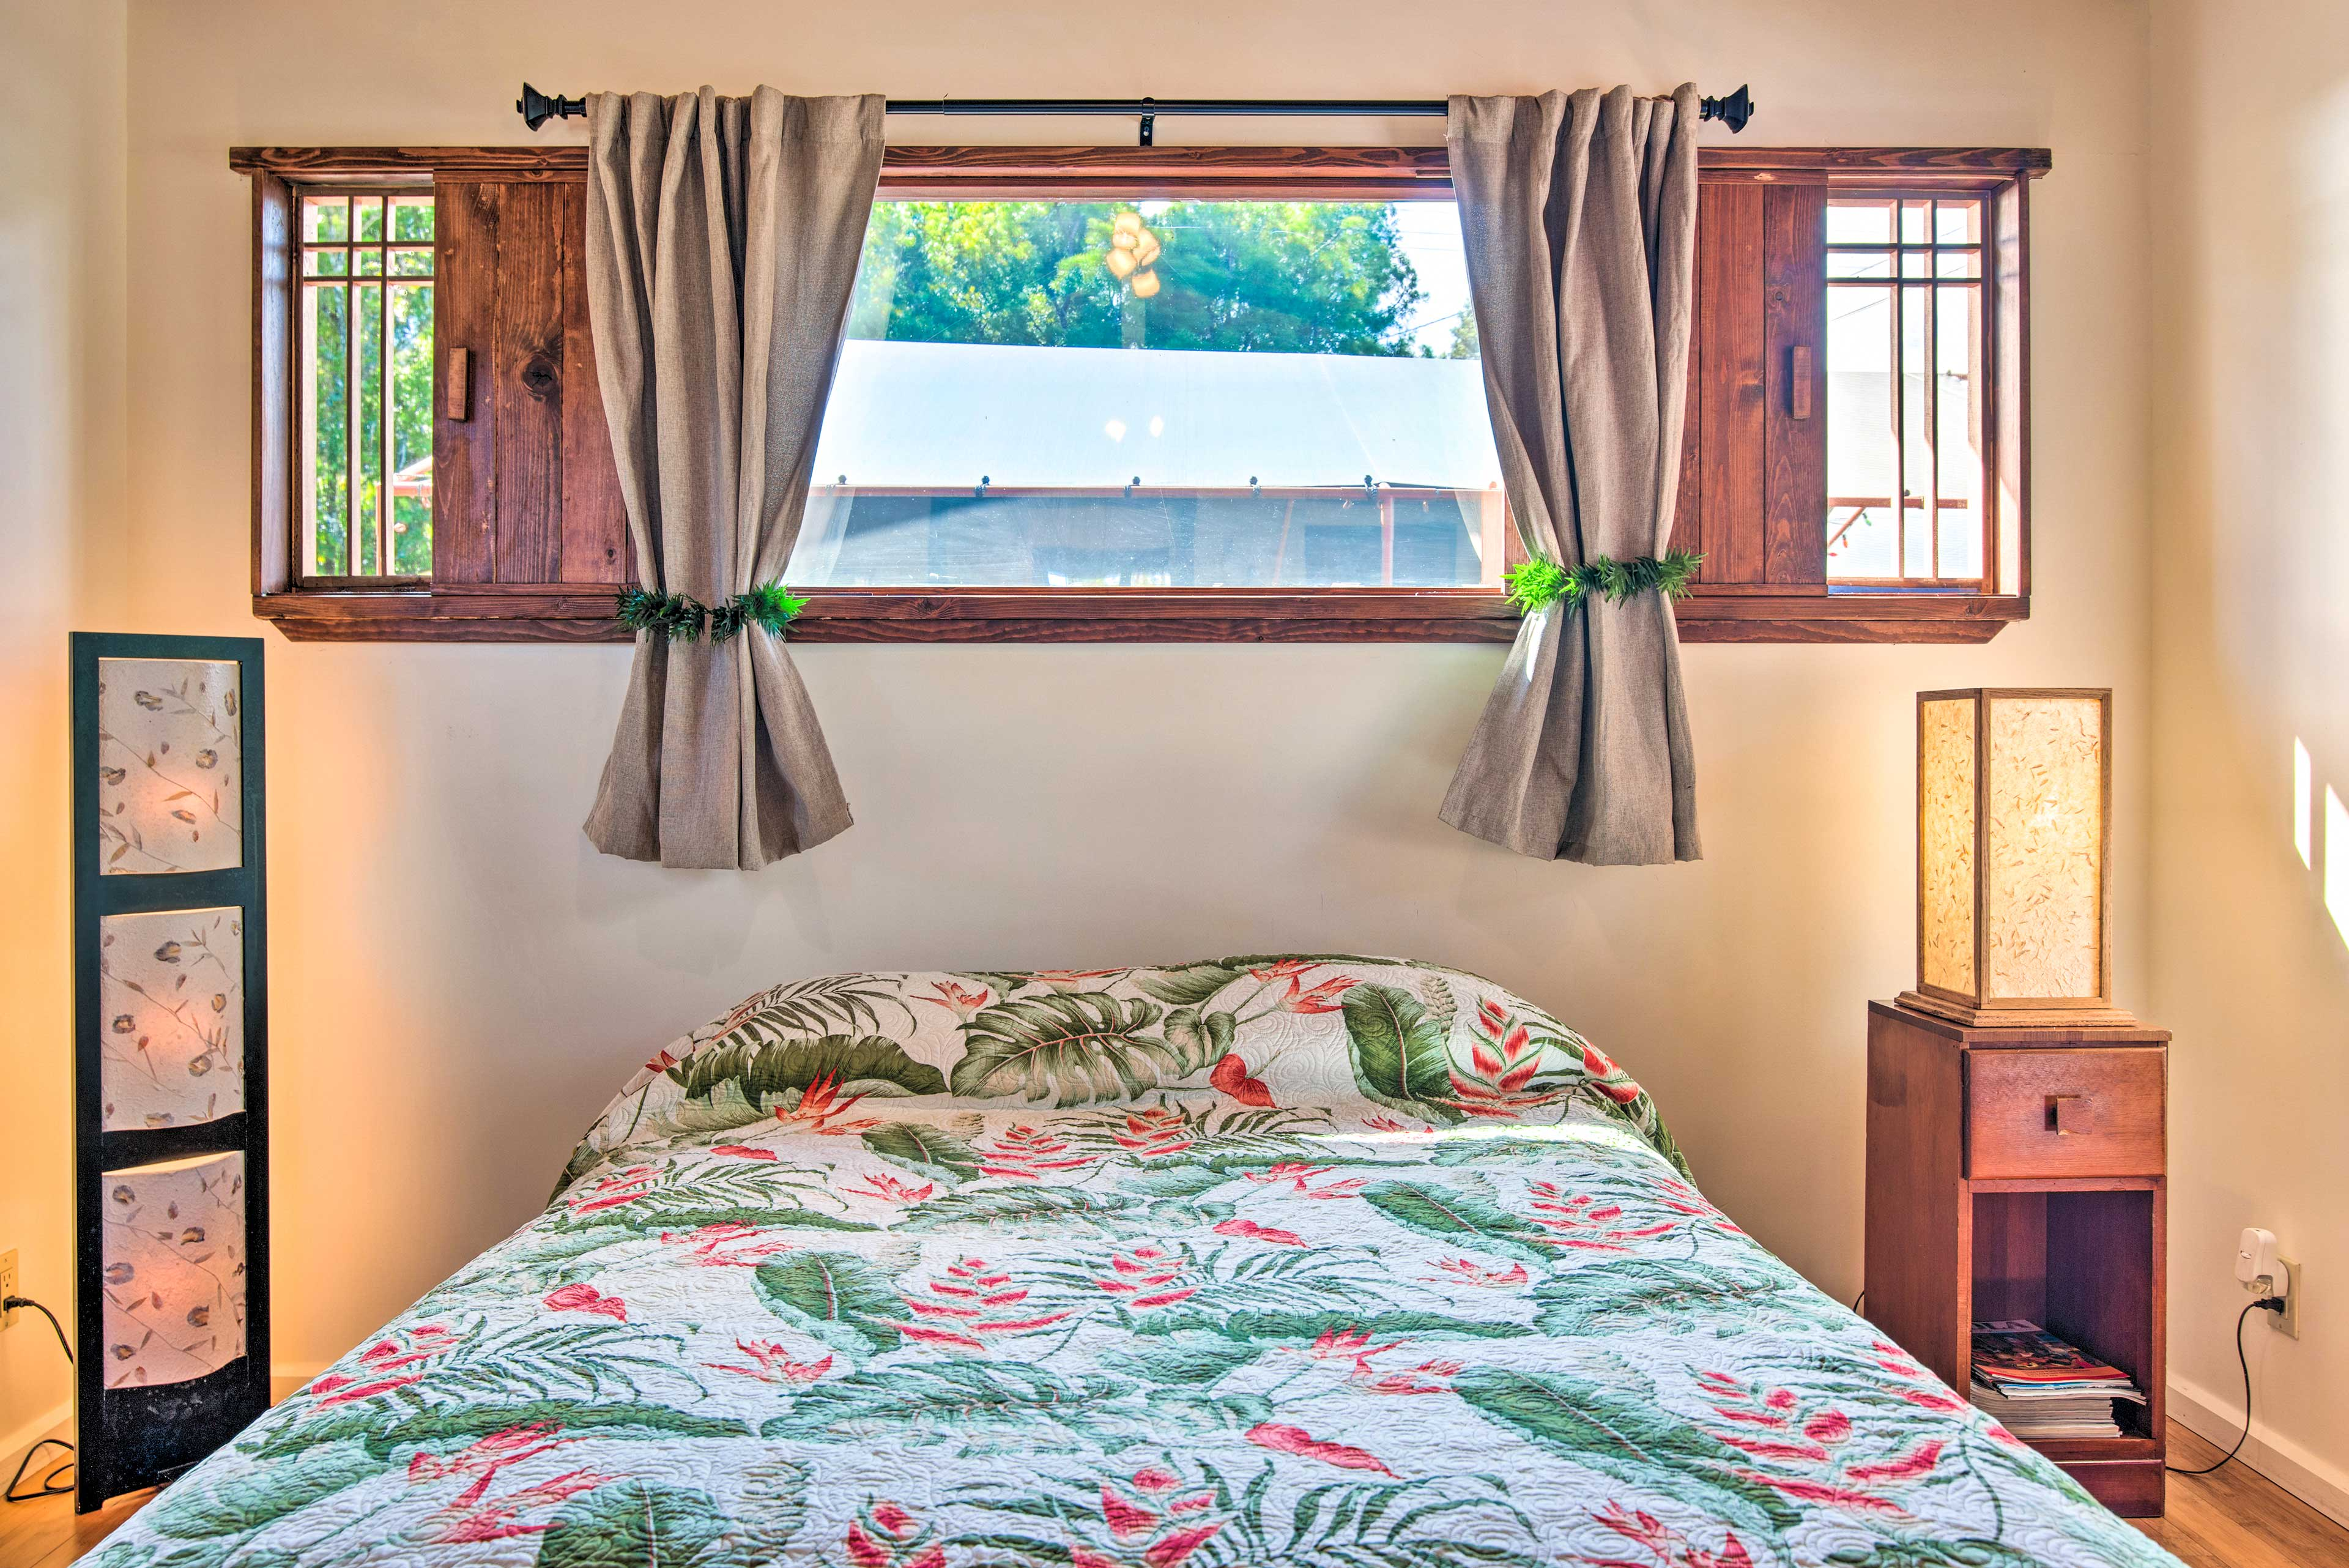 Studio   Linens and Towels Provided